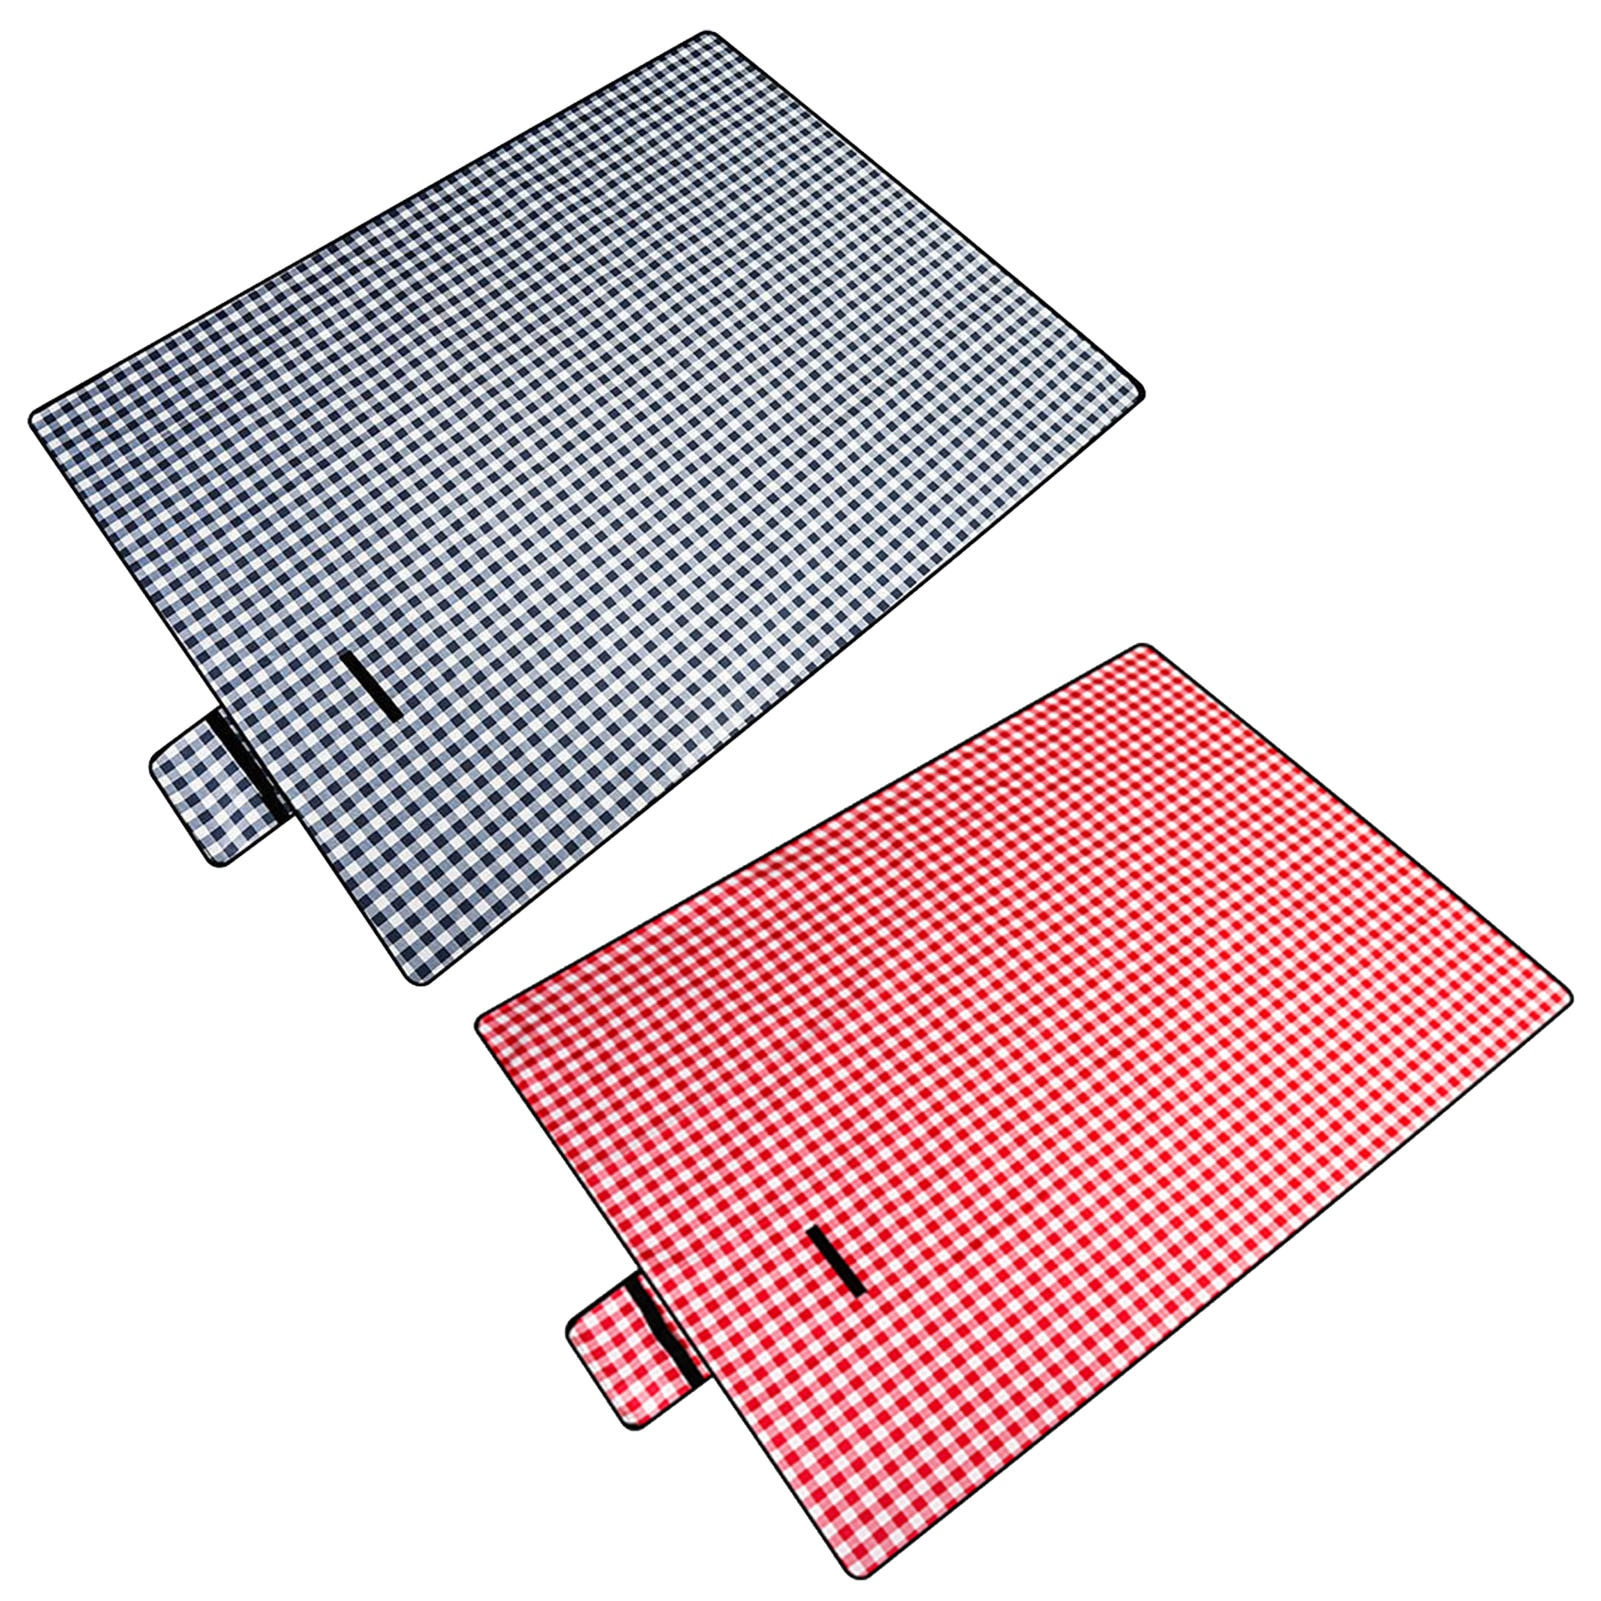 Outdoor Moisture-proof Picnic Mat With Handle Lawn Mat Beach Mat Portable Waterproof Oxford Cloth Mat For Picnic Camping Hiking vilead 4 sizes camping mat outdoor camping tent waterproof oxford cloth moisture pad thick beach mat picnic camping hiking